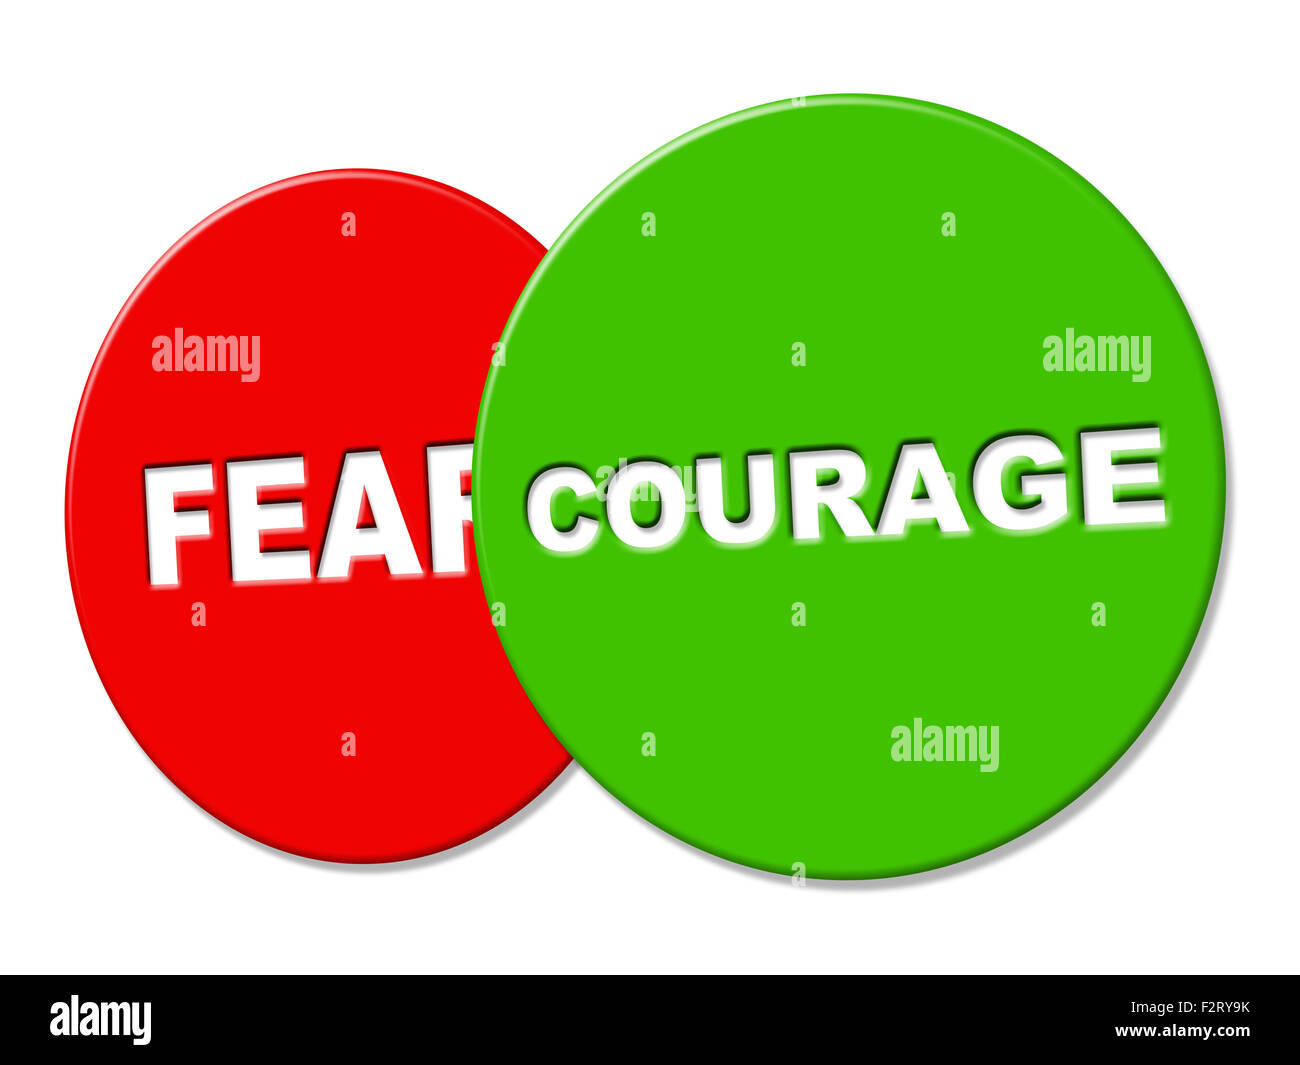 Courage Sign Showing Advertisement Valour And Fearlessness Stock Photo